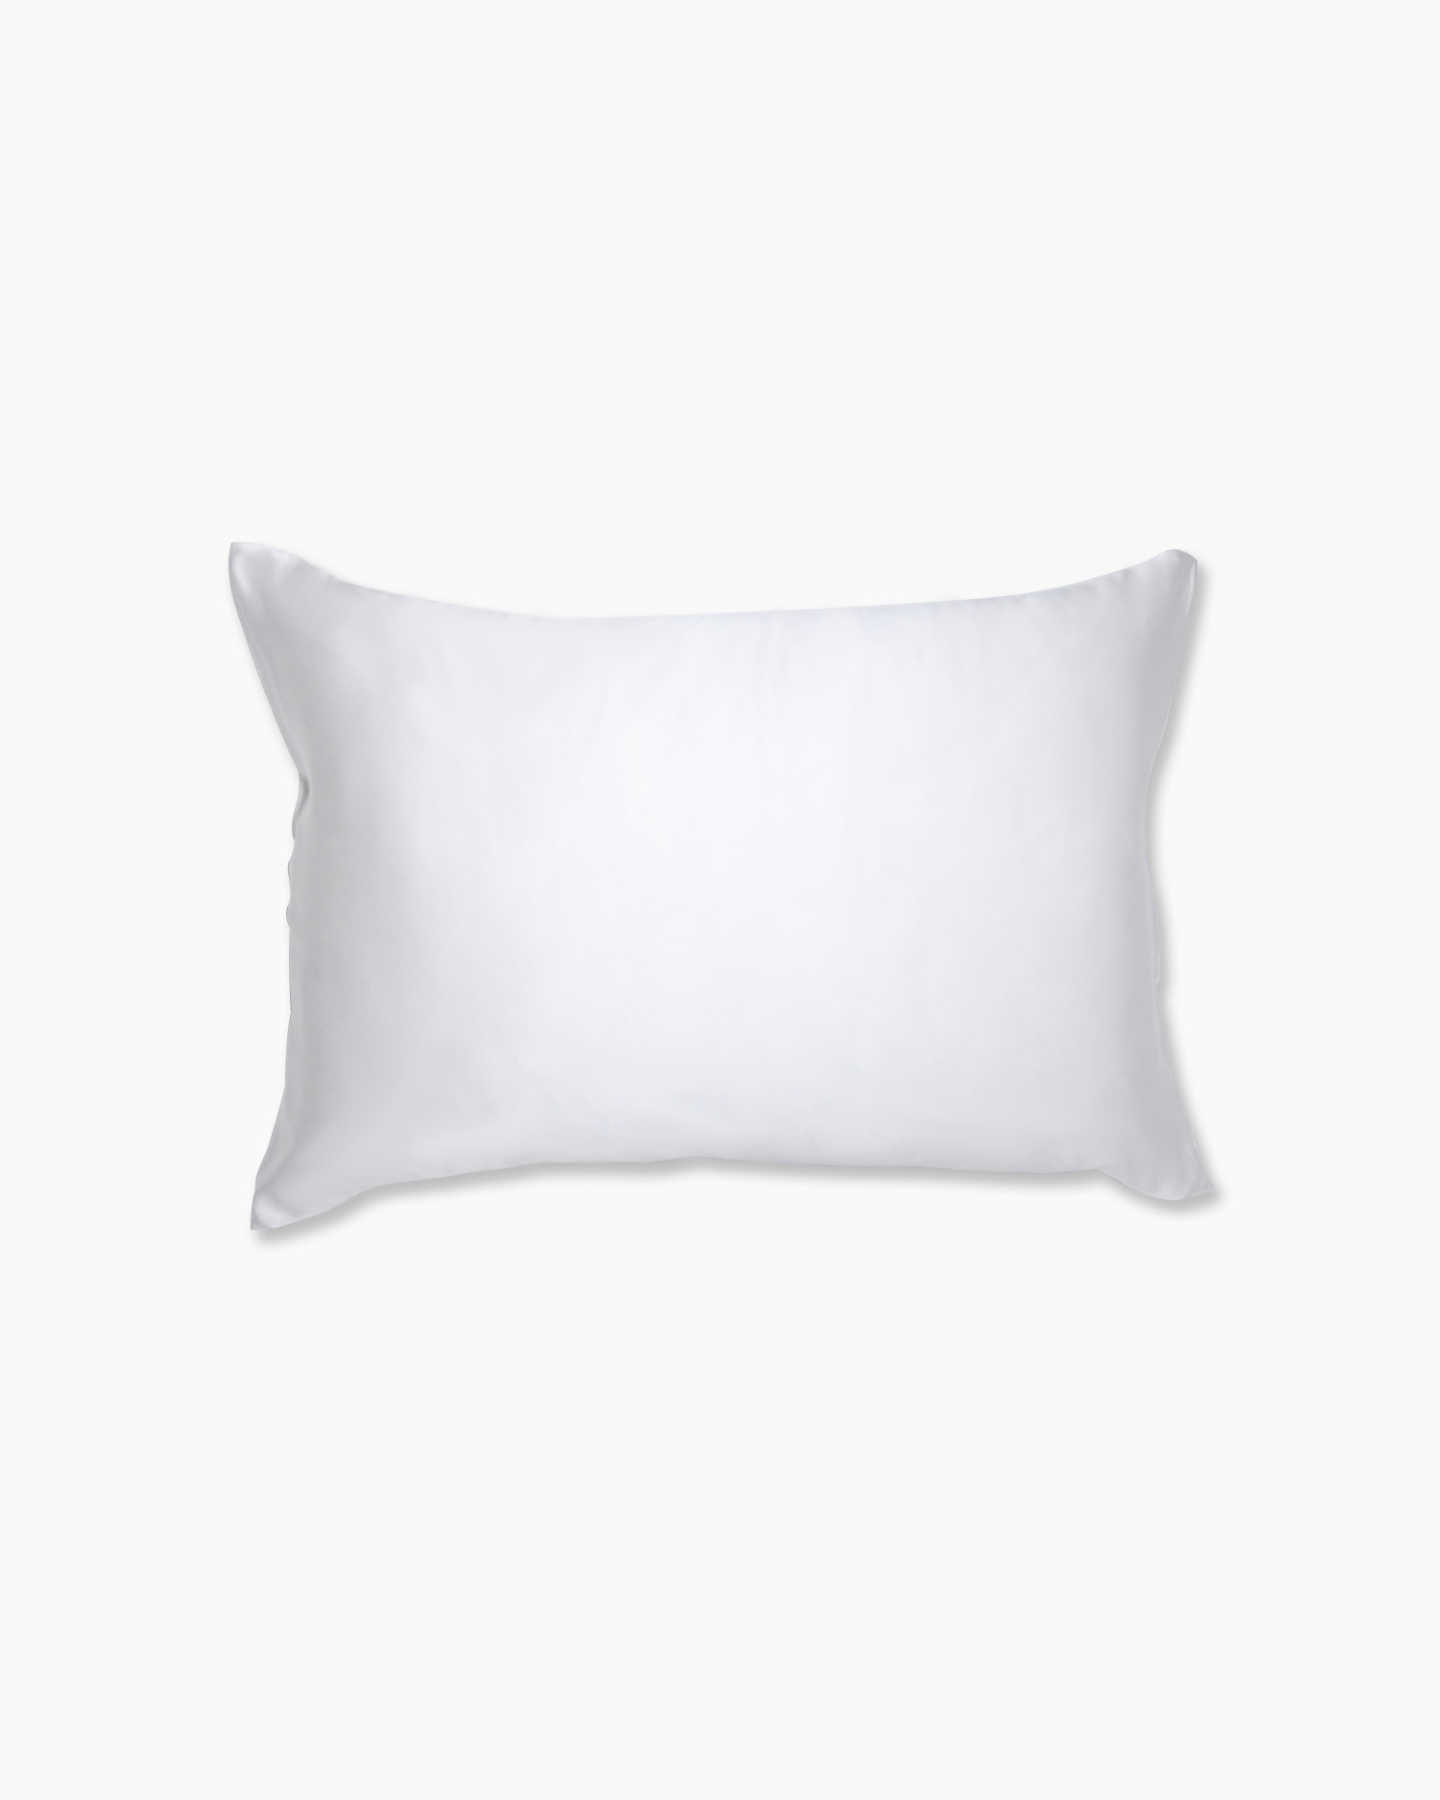 Pair With - Mulberry Silk Beauty Sleep Pillowcase - Ivory